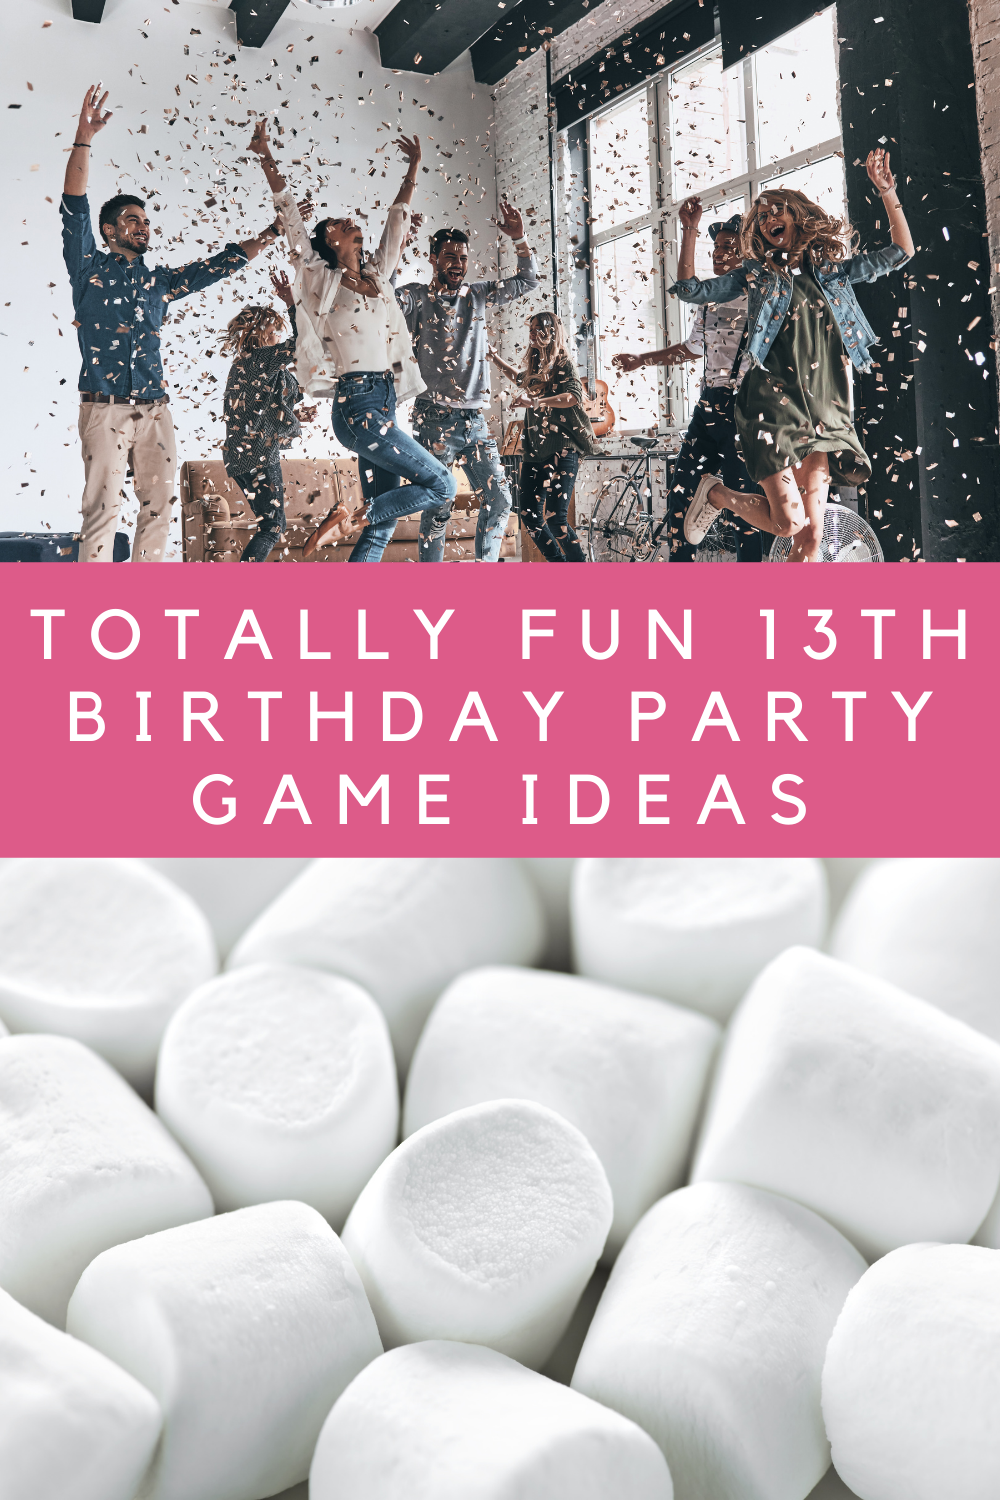 The best 13th Birthday Party Game Ideas